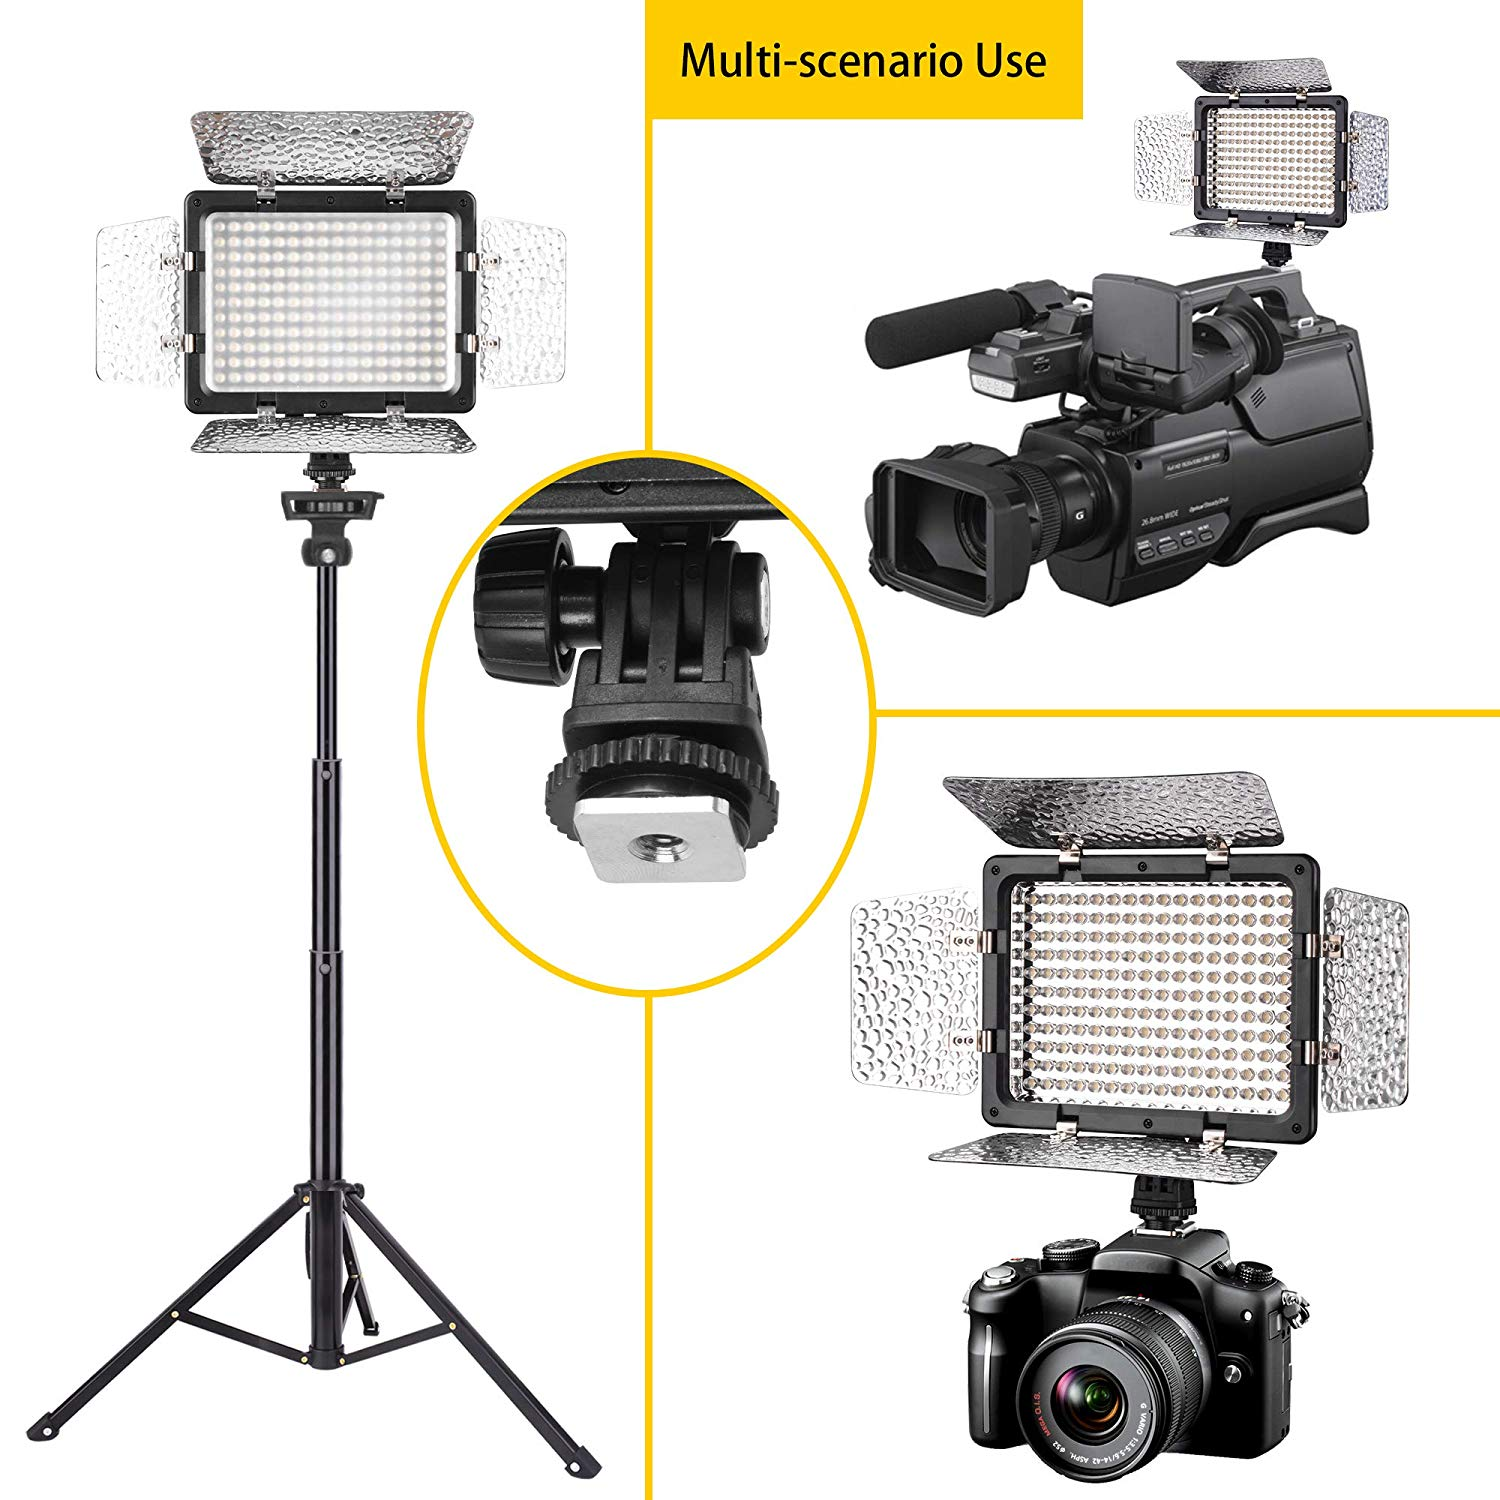 Emart LED Photo Video Light - Dimmable 176 LED Panel Lighting Kit with 4.3 ft Light Stand